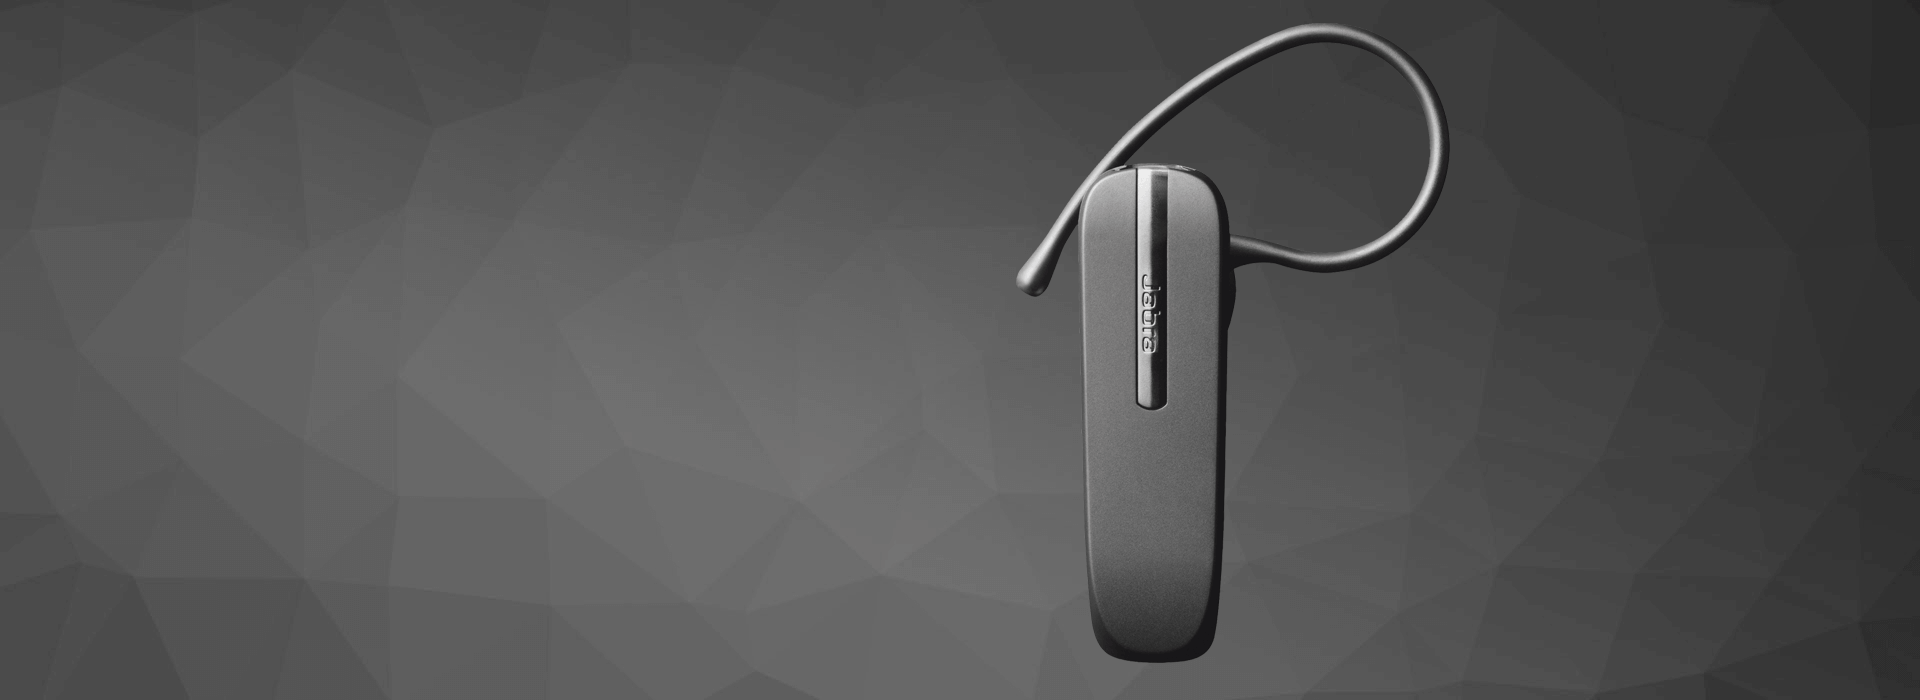 17bbe2dc30c Jabra BT2047 - Bluetooth headset for mobile devices